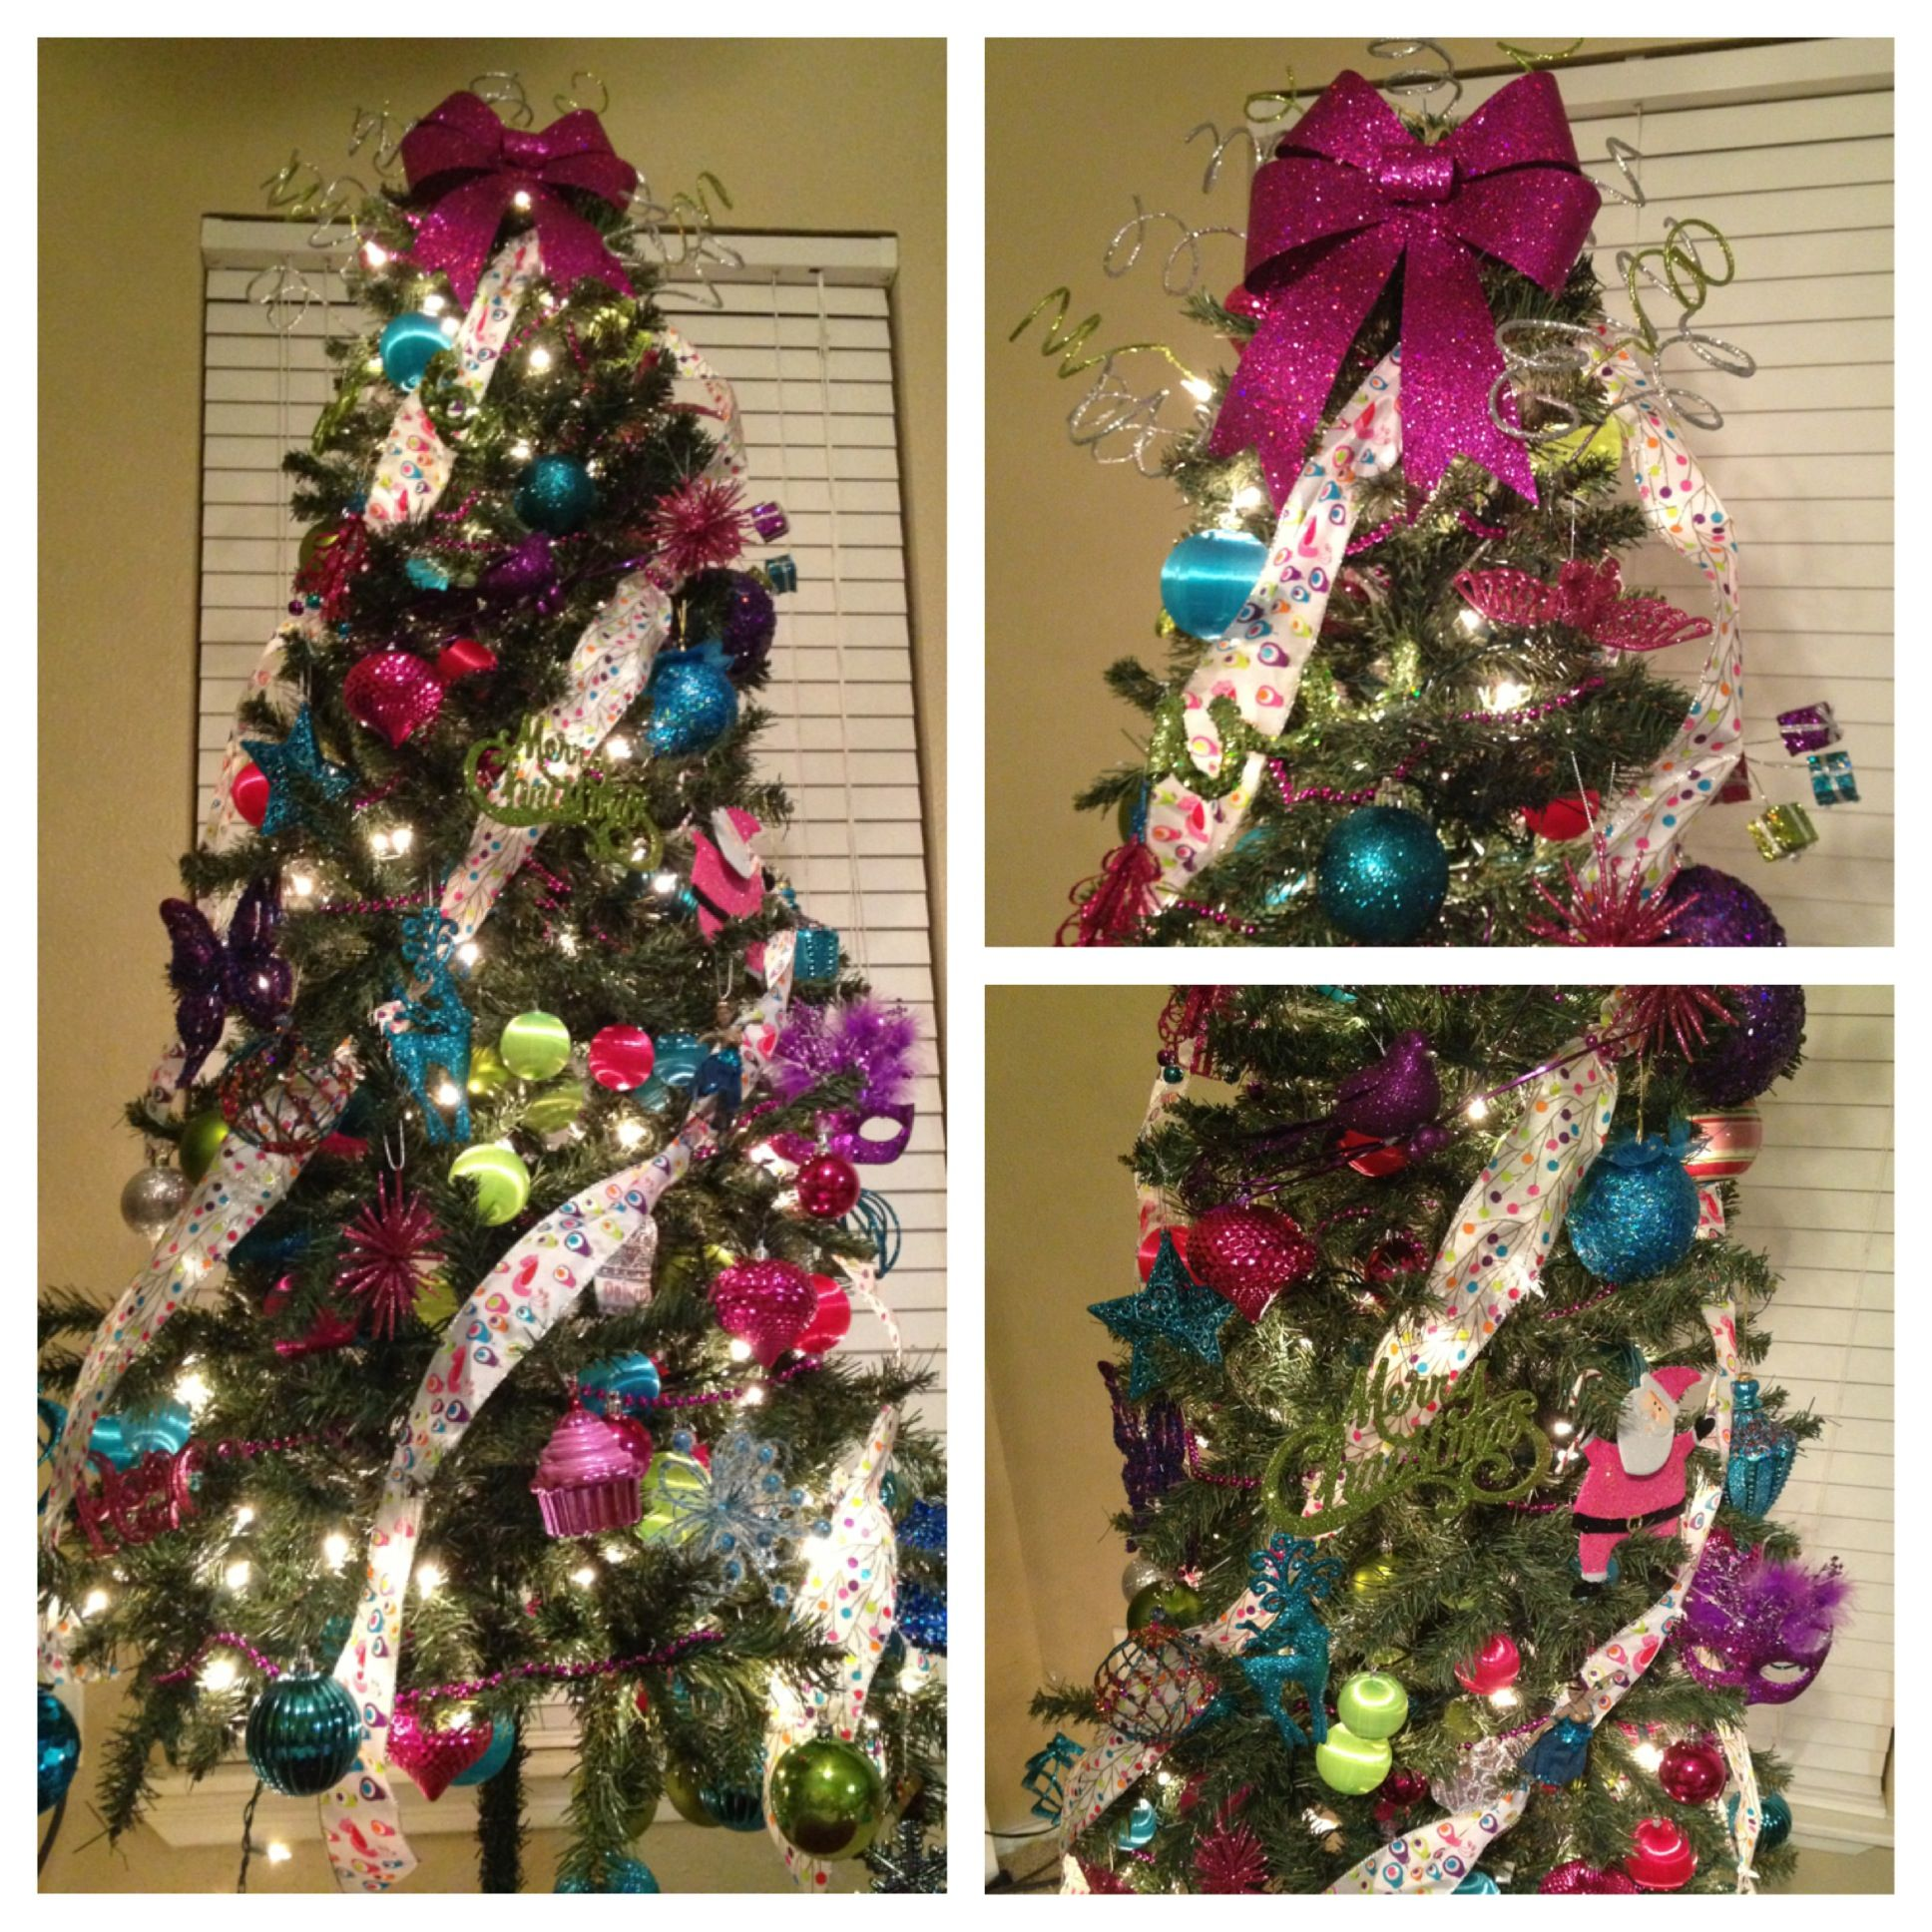 Blue and purple christmas tree decorations - Girly Christmas Tree Full Of Pink Green Blue Purple A Little Girl S